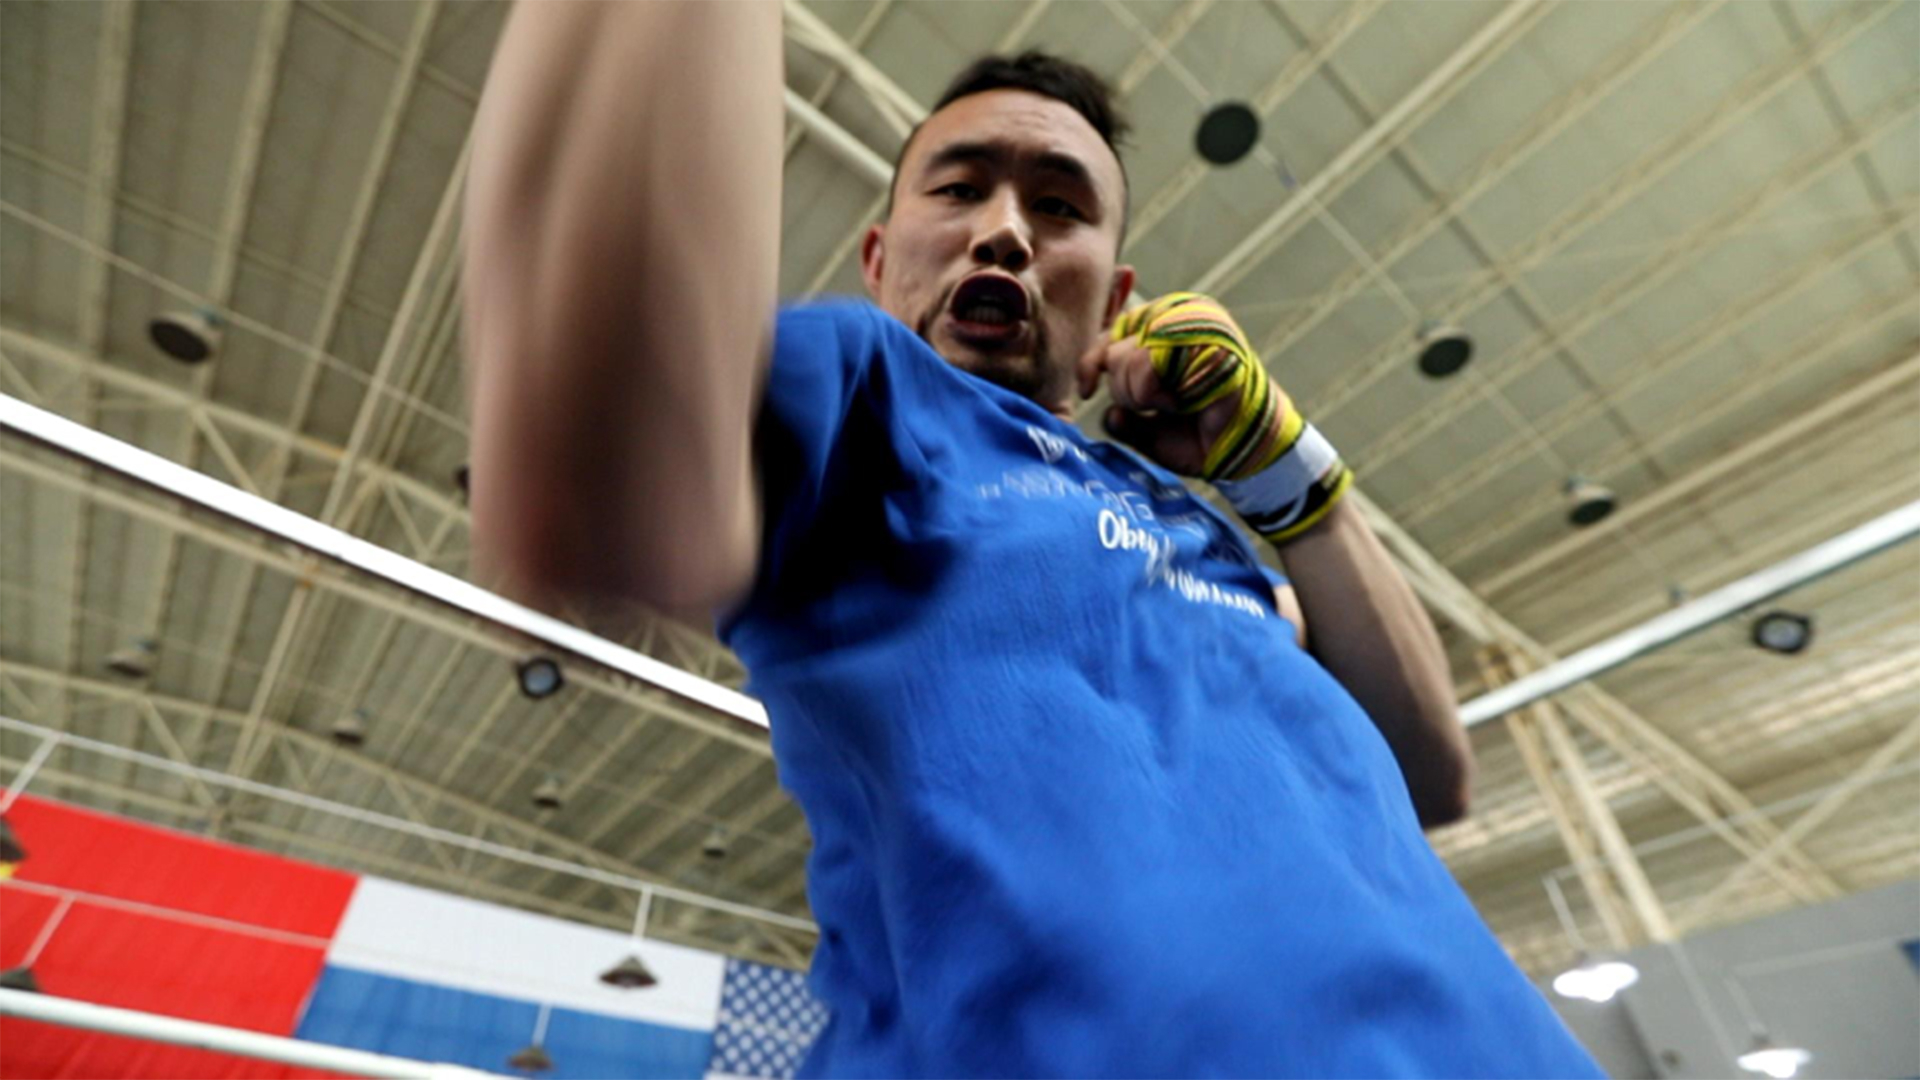 Chinese boxing champion struggles at a crossroads